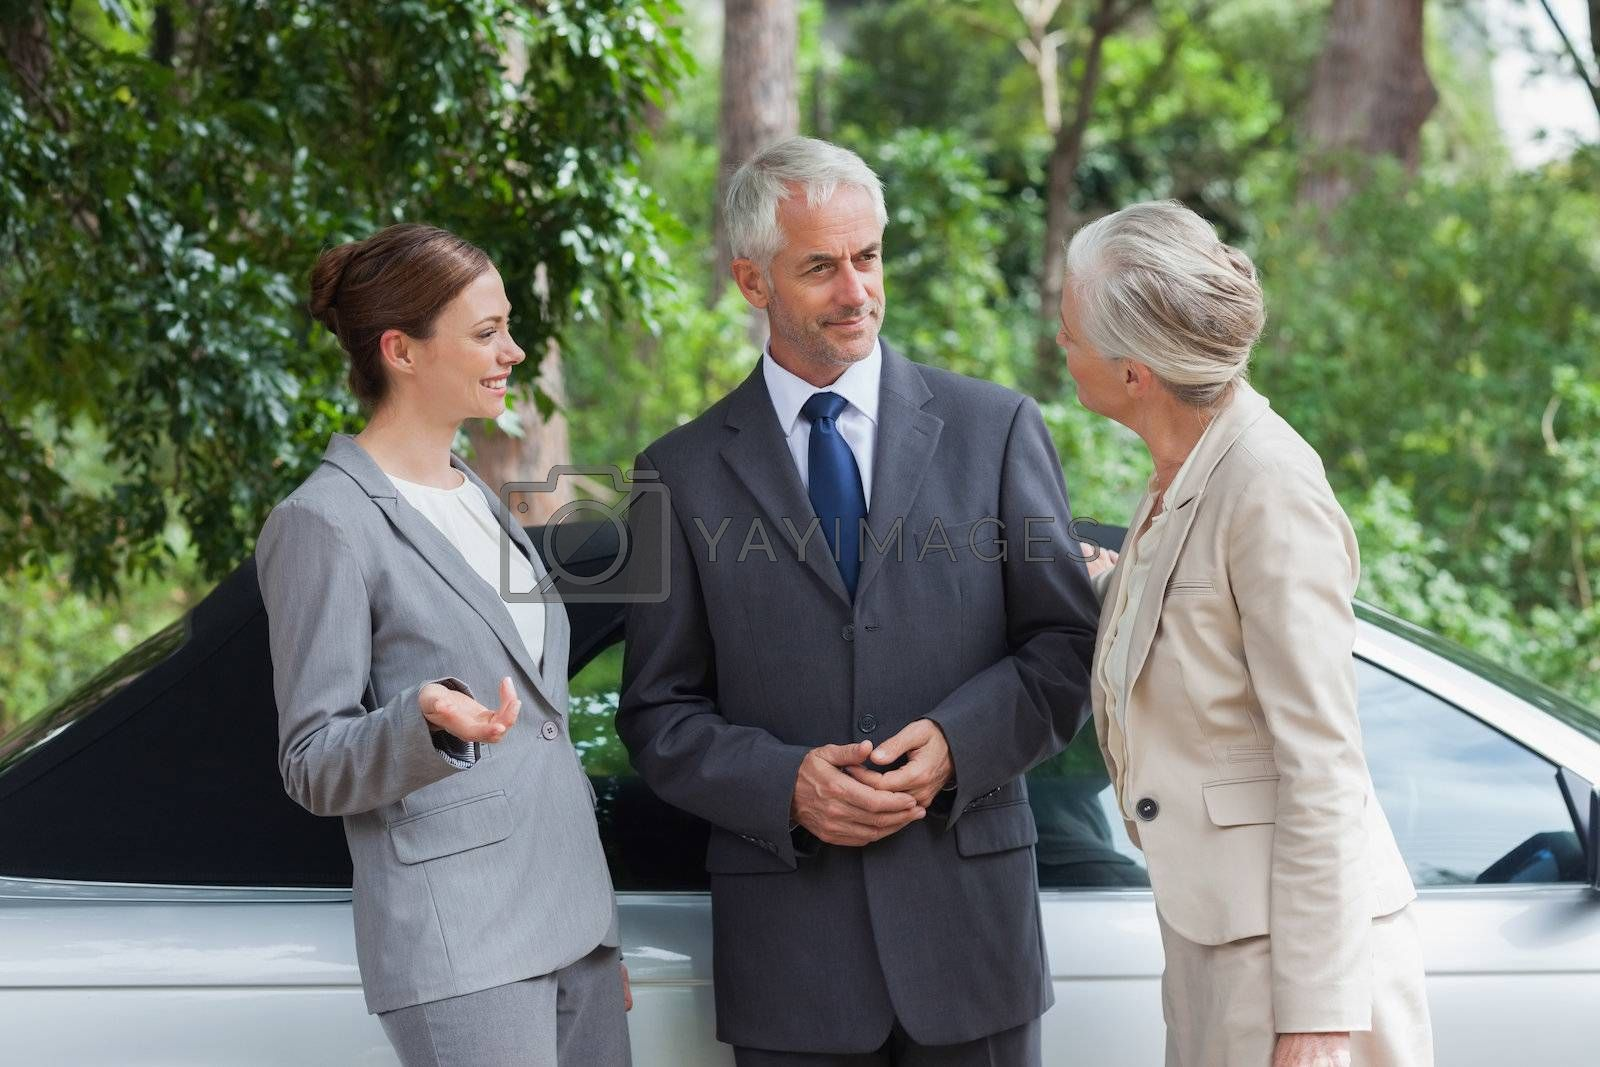 Smiling business people talking together by classy cabriolet by Wavebreakmedia